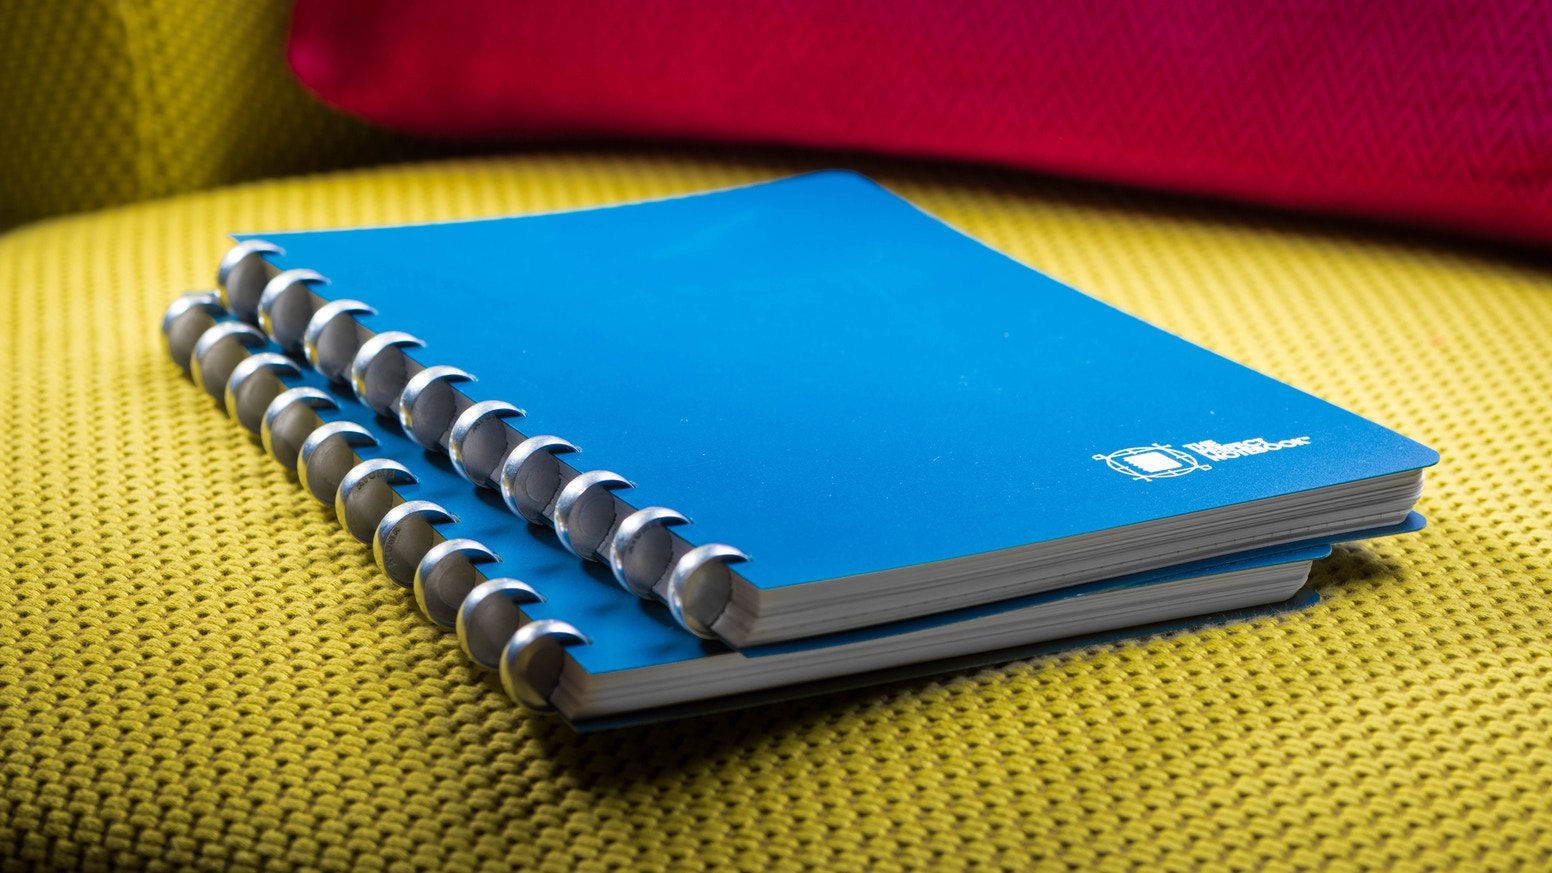 One notebook to replace the productivity apps that have failed you. It's so simple it's brilliant.